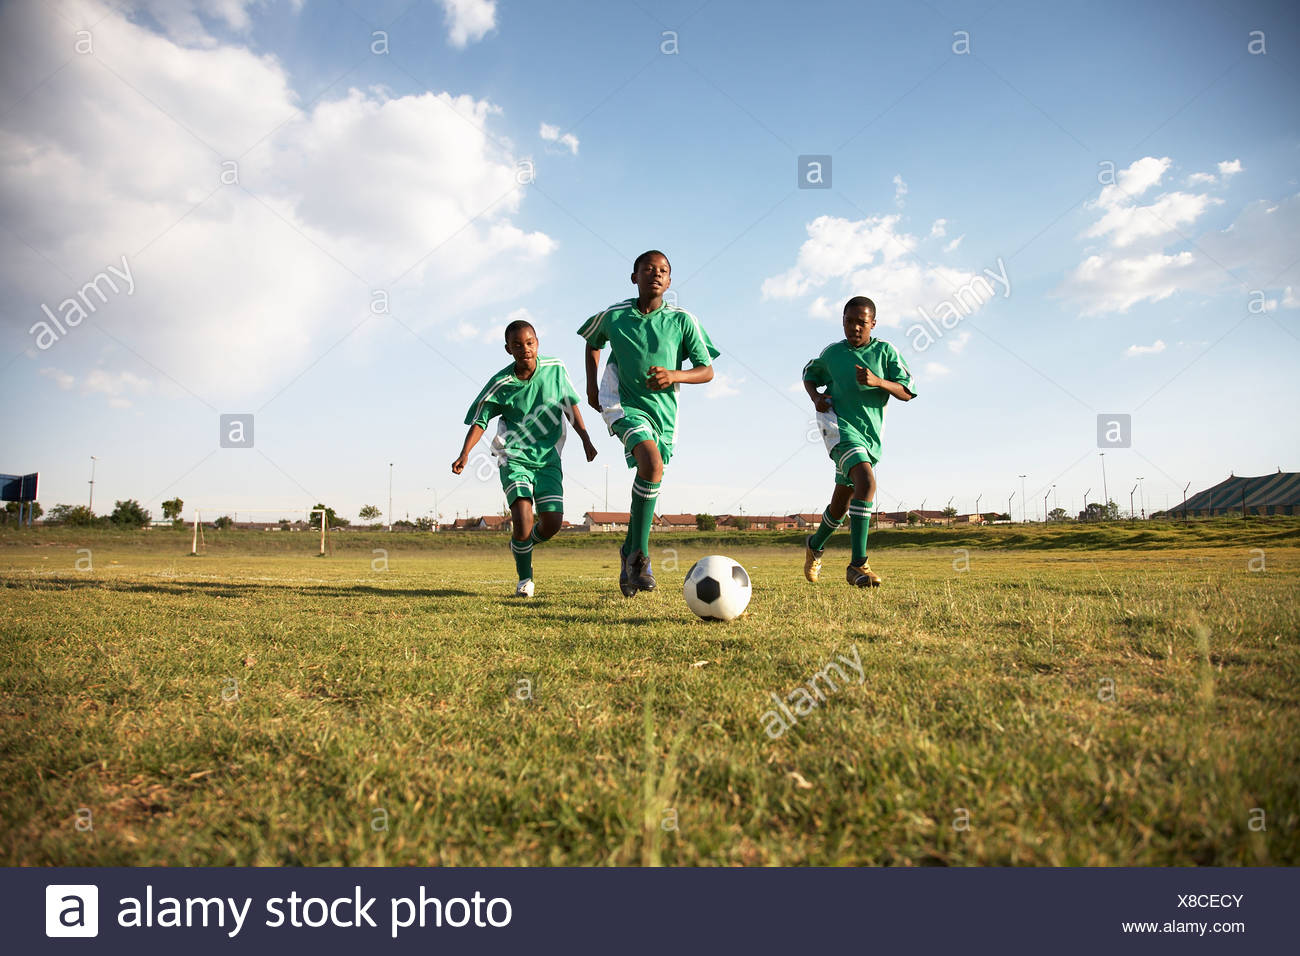 13MA-039 © Monkeyapple  aFRIKA Collection  Great Stock !  Young team playing soccer - Stock Image